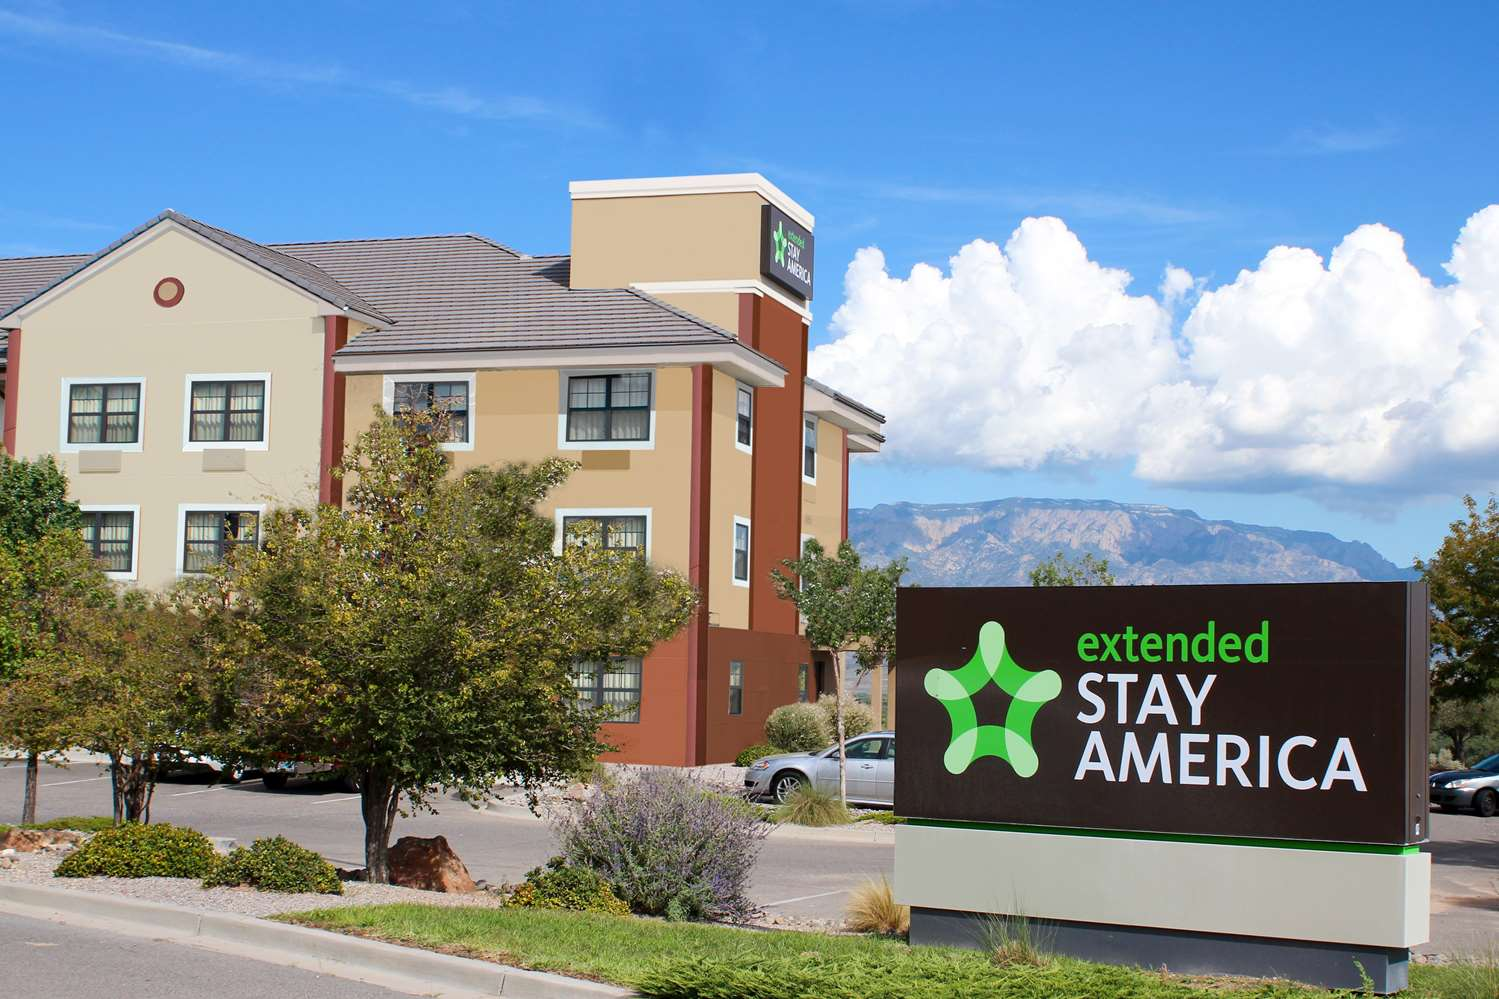 extended stay america hotel rio rancho nm see discounts. Black Bedroom Furniture Sets. Home Design Ideas